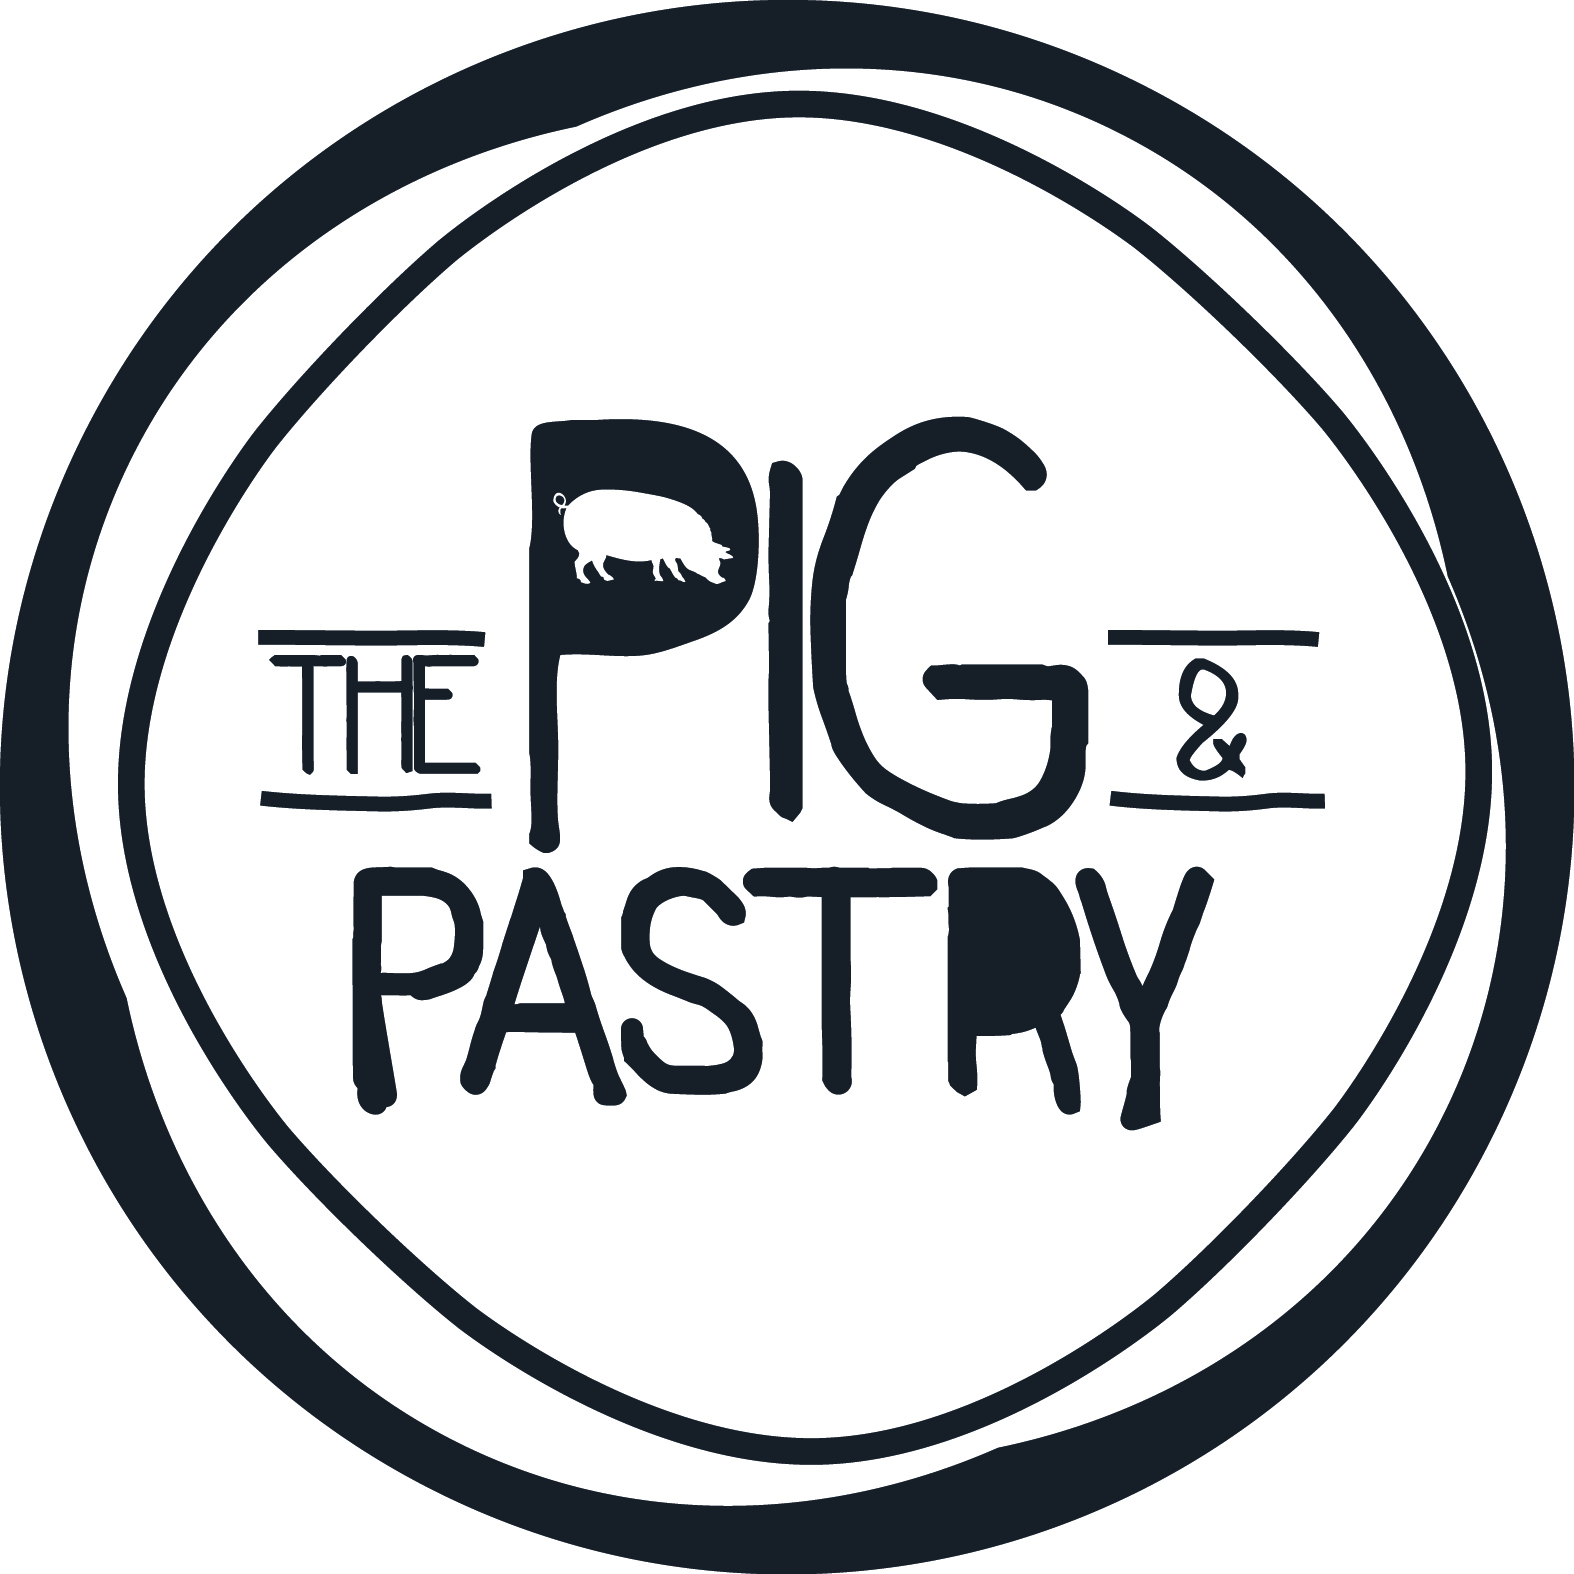 The Pig & Pastry